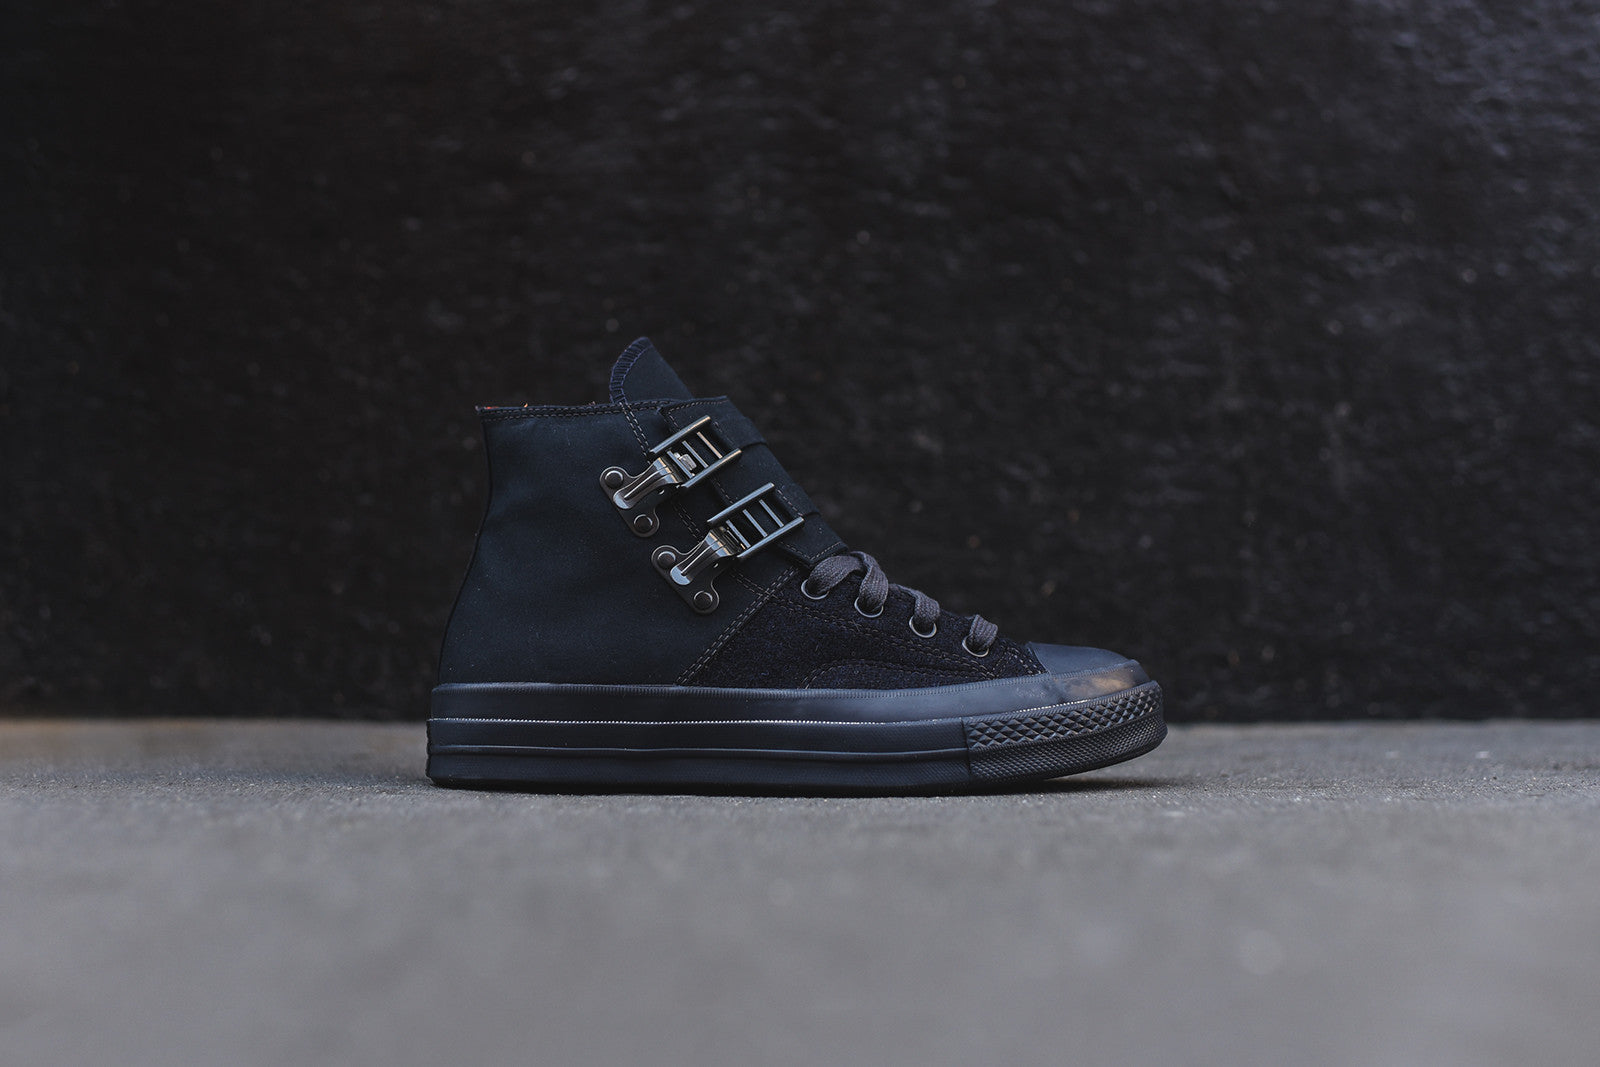 805906db4805 ... Converse x Nigel Cabourn Chuck Taylor All Star High - Dark Navy Orange  ...